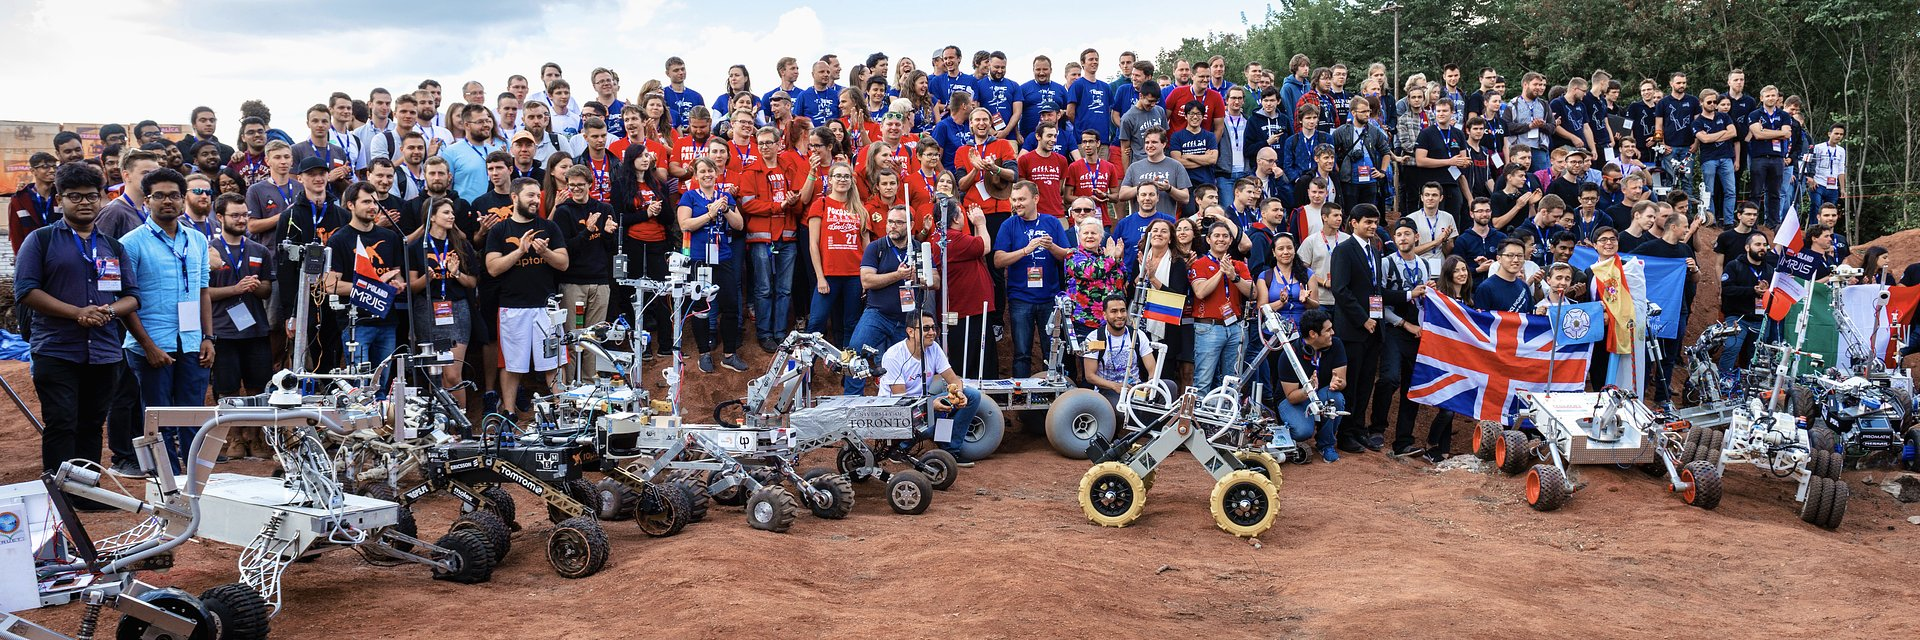 The largest European robotics and space event is counting down the time until take off!